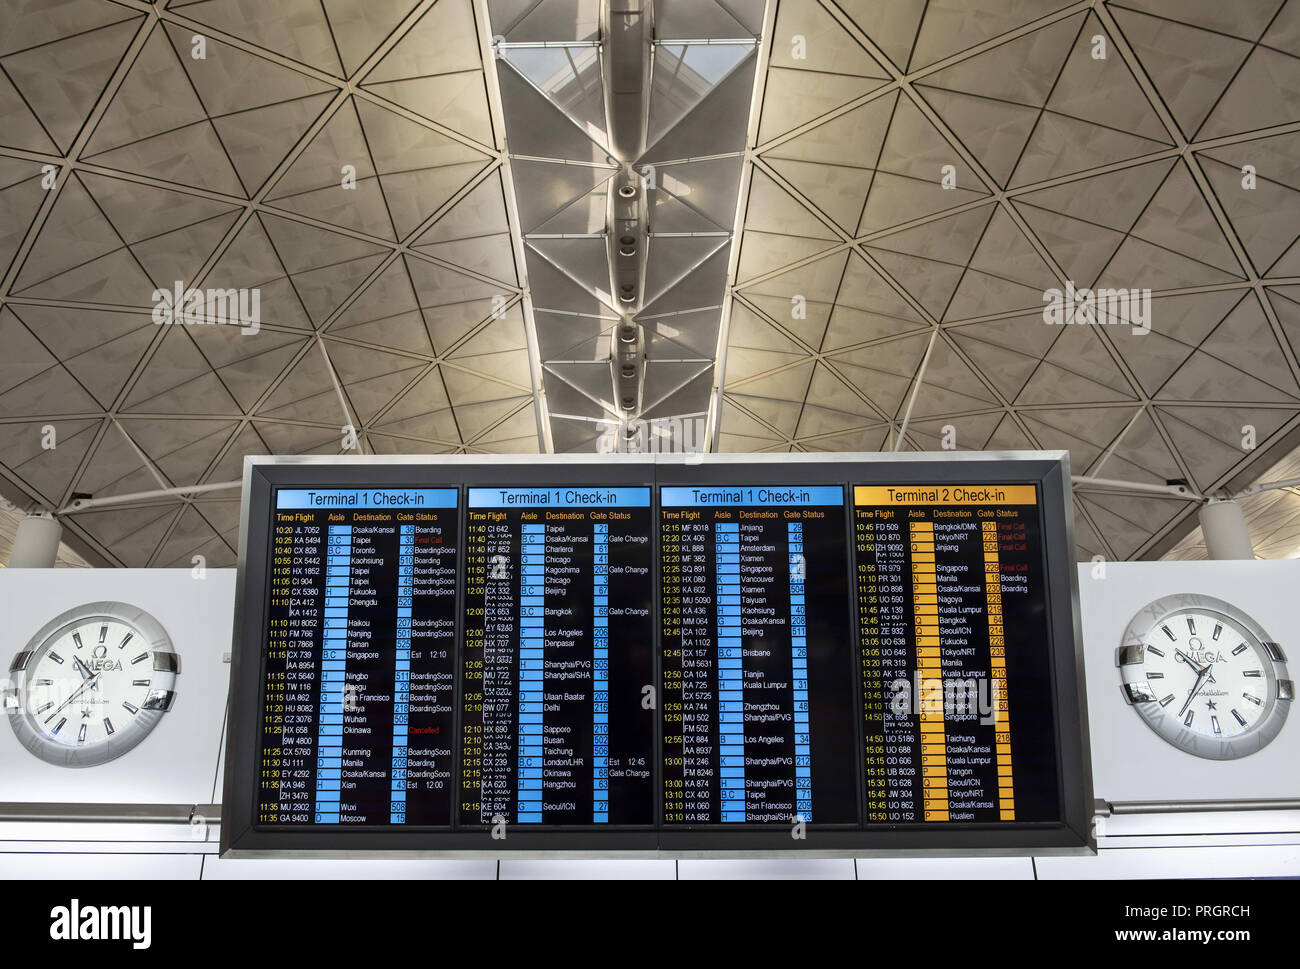 Chek Lap Kok island, Hong Kong. 1st Jan, 2014. Airport screen is seen showing airline check-in desk location and flights schedule and status. Credit: Miguel Candela/SOPA Images/ZUMA Wire/Alamy Live News - Stock Image